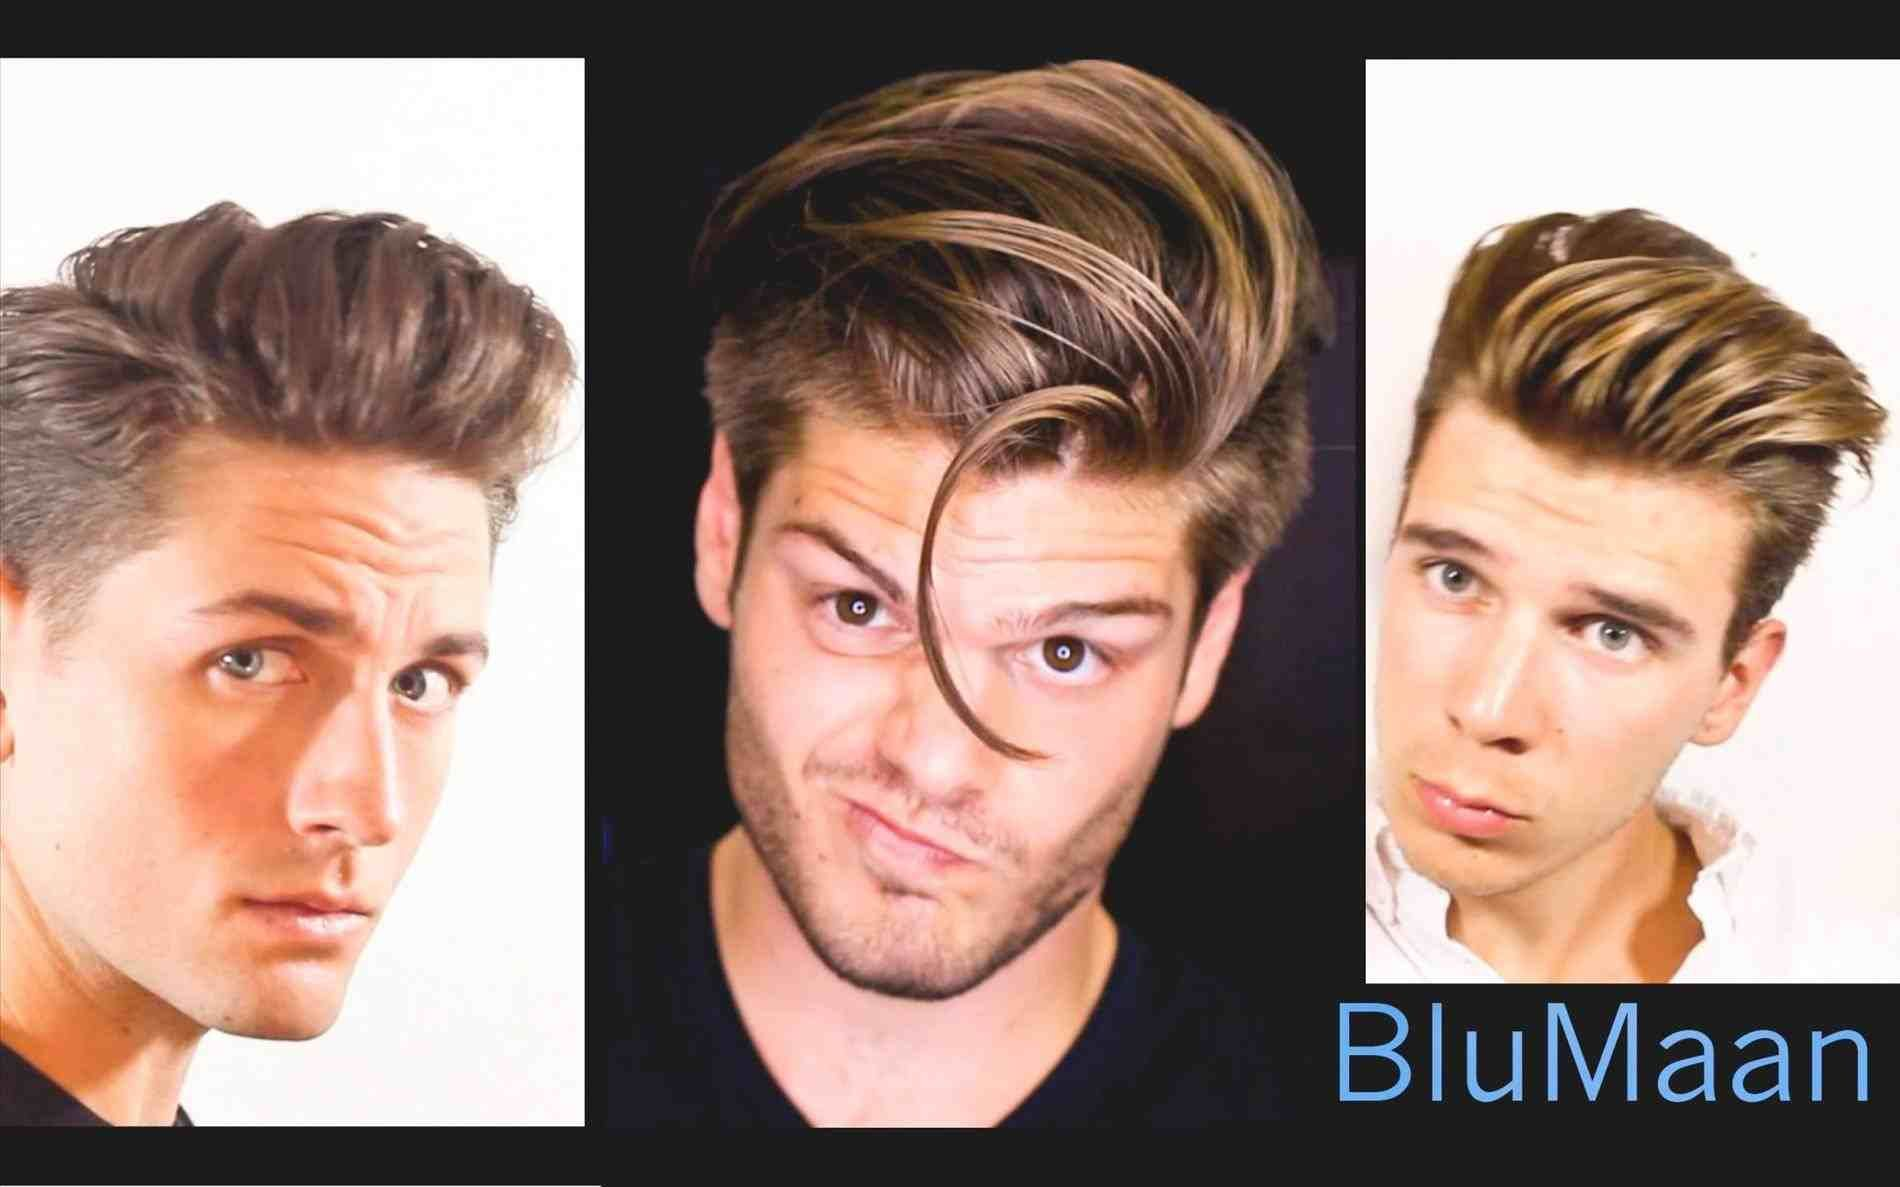 Braids For Men Simple And Creative Looks J Curve Volume Rebonding At Focus Hairdressing Medium Length Hair Wave Perm I Forward Tst Image Detail For Should